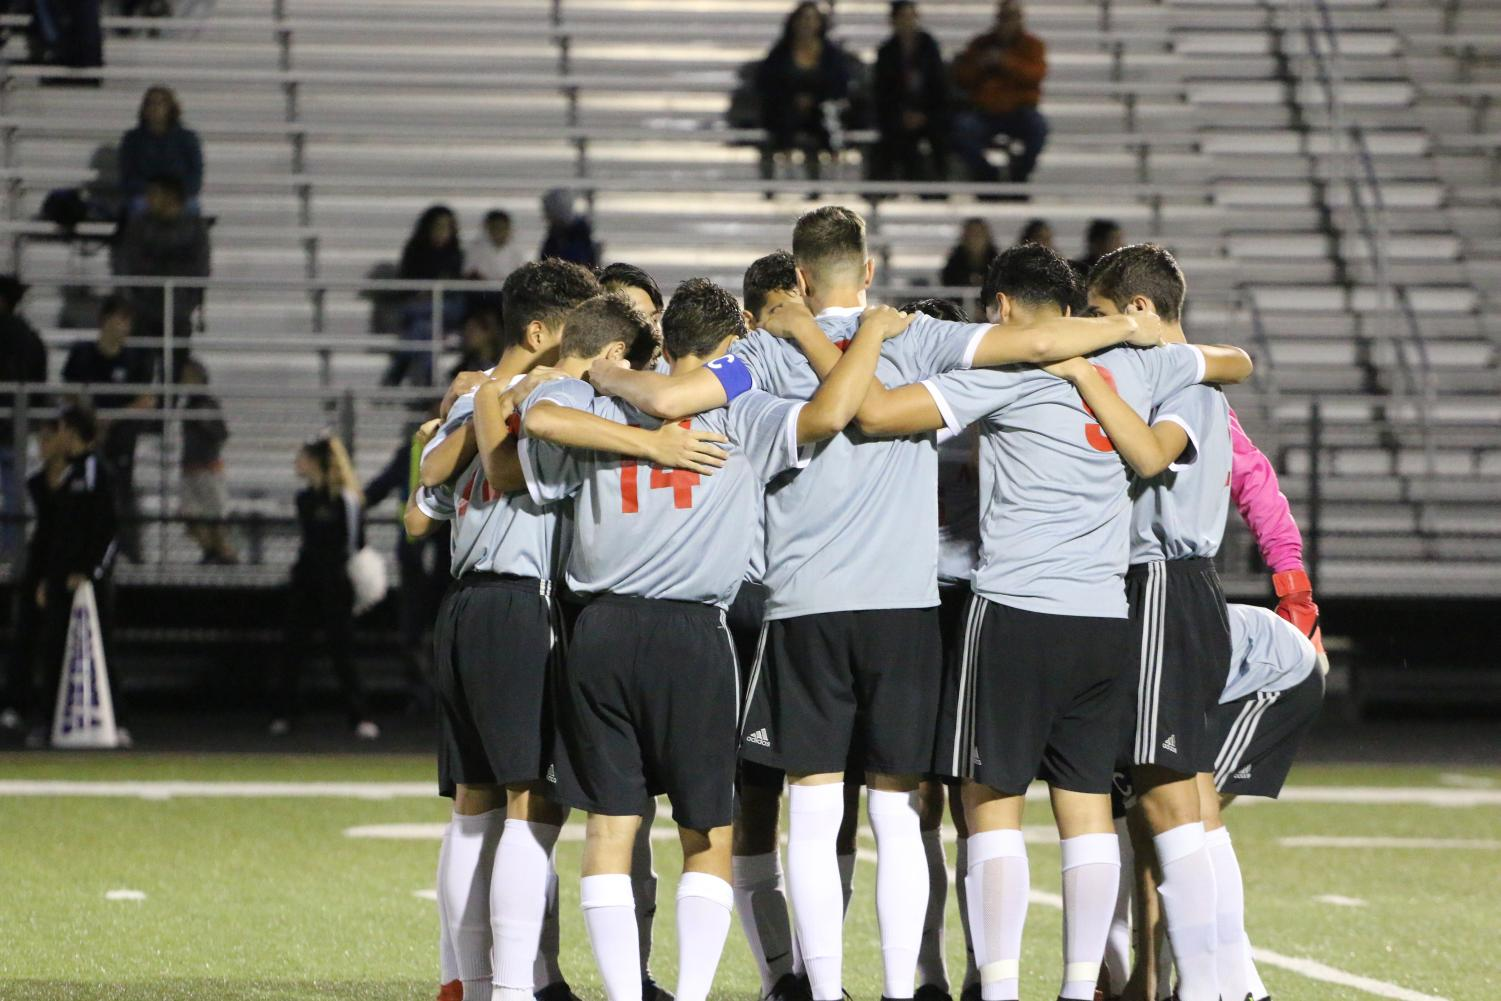 Players huddling before the game starts to have a great game